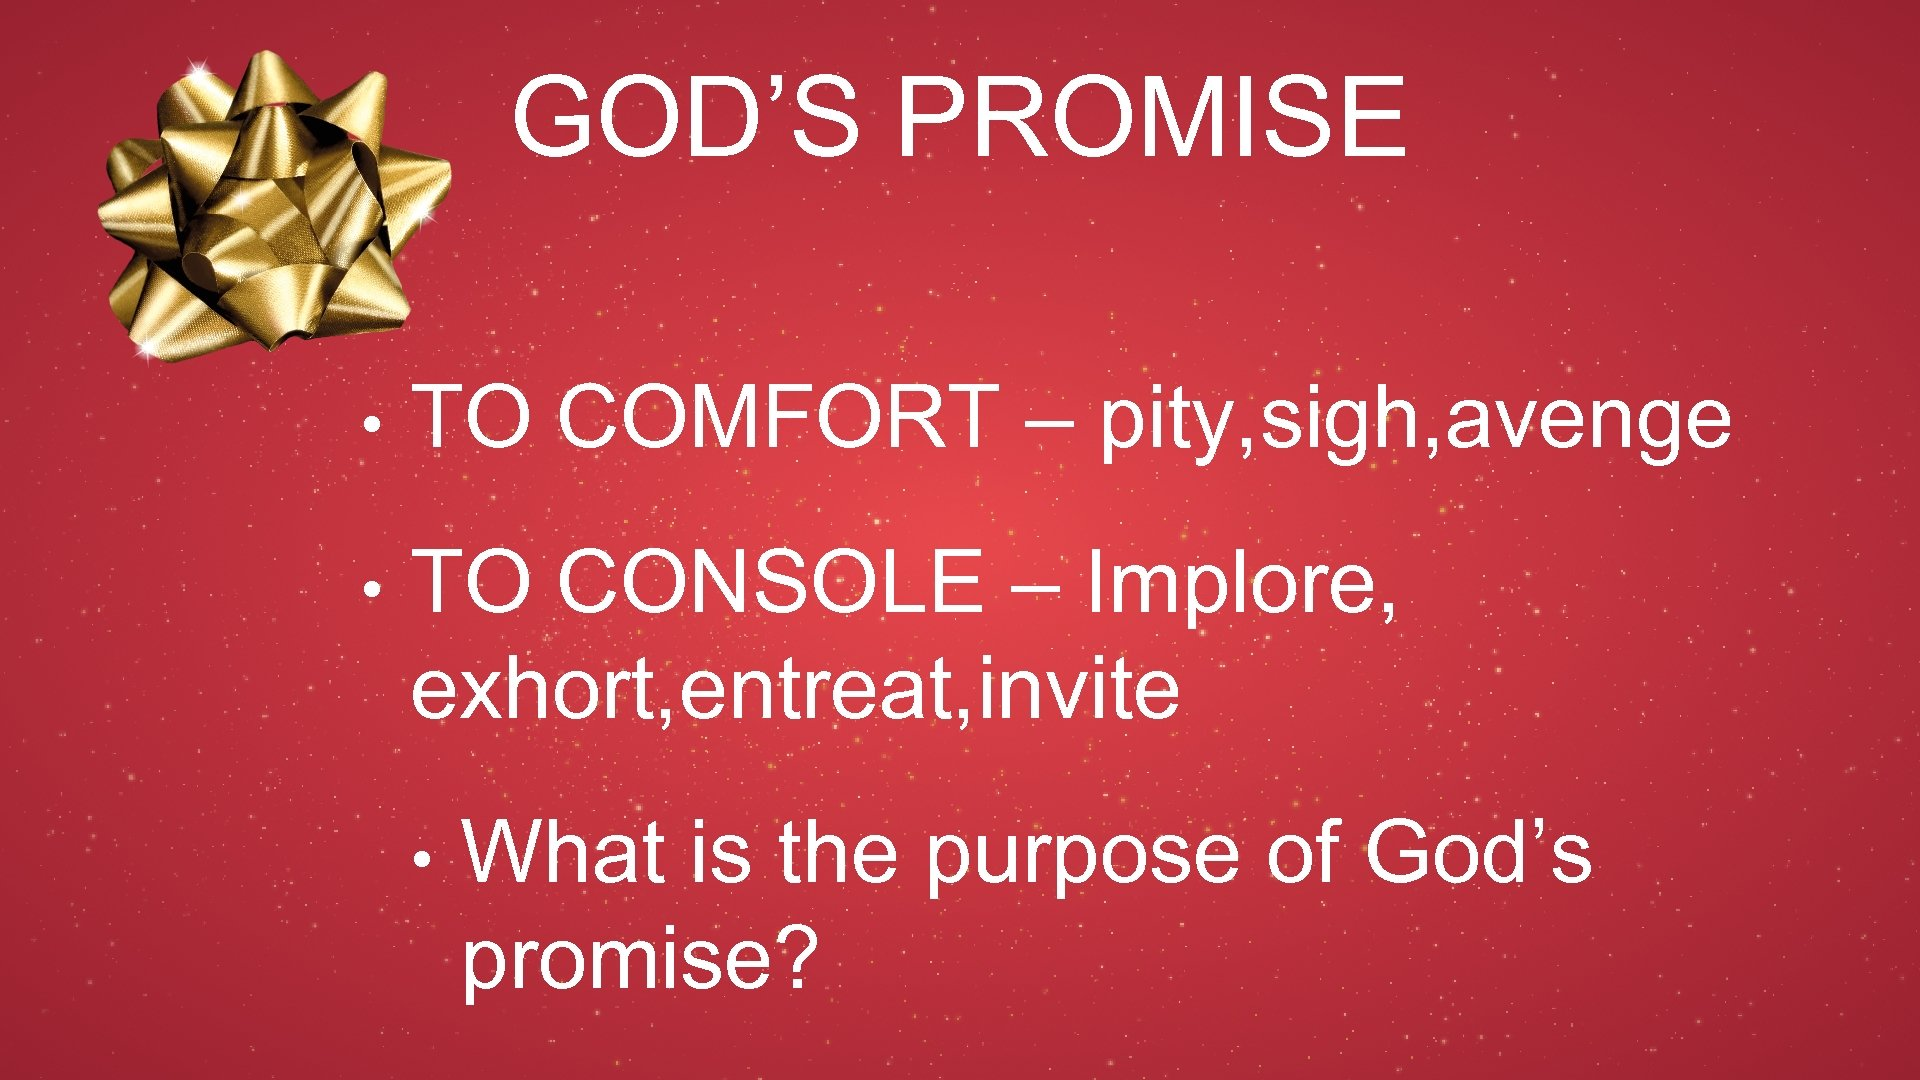 GOD'S PROMISE • TO COMFORT – pity, sigh, avenge • TO CONSOLE – Implore,